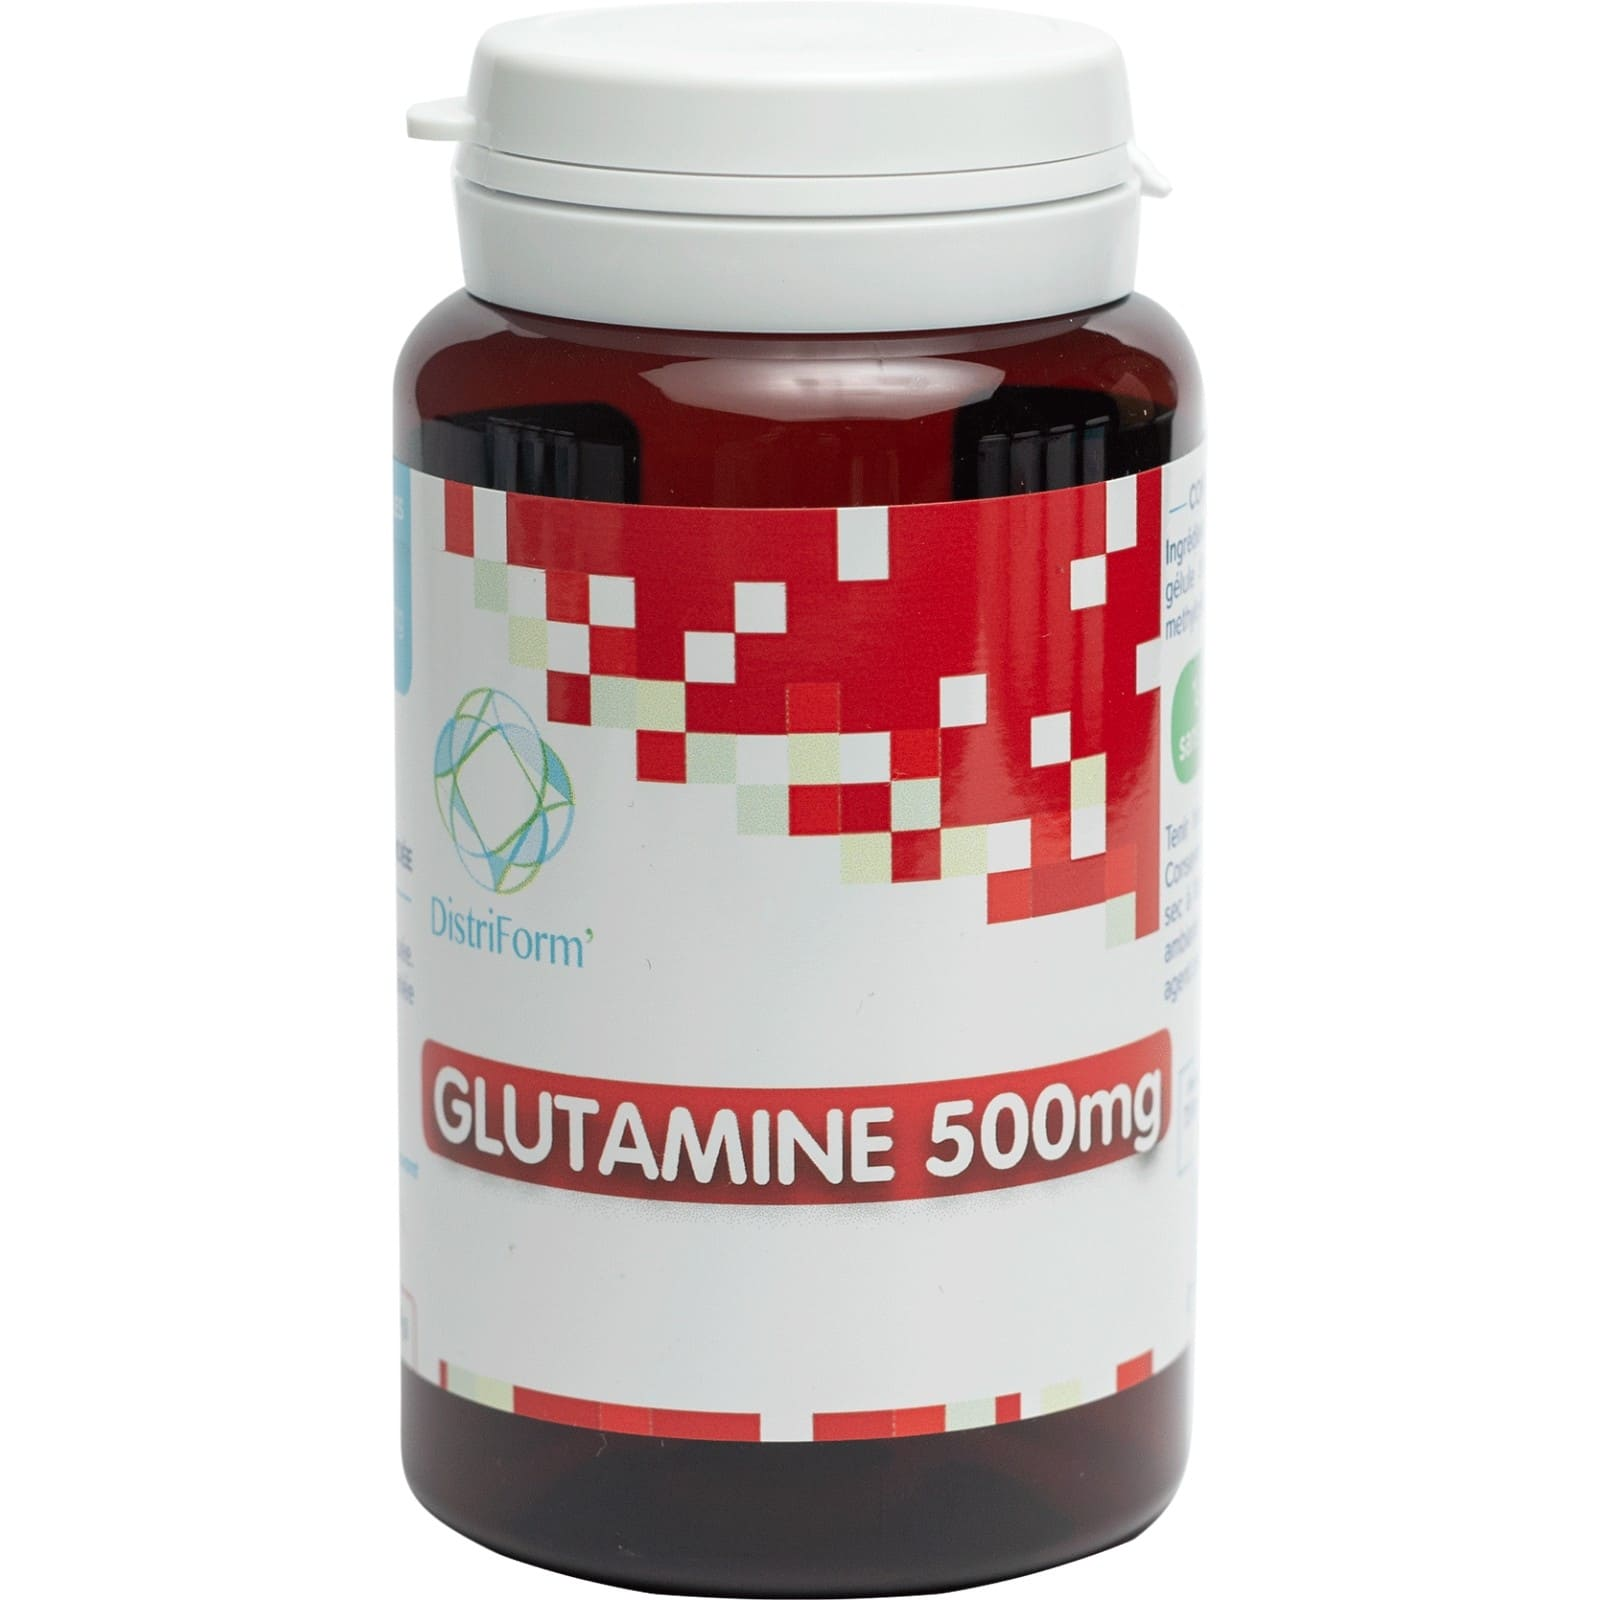 Glutamine Distriform